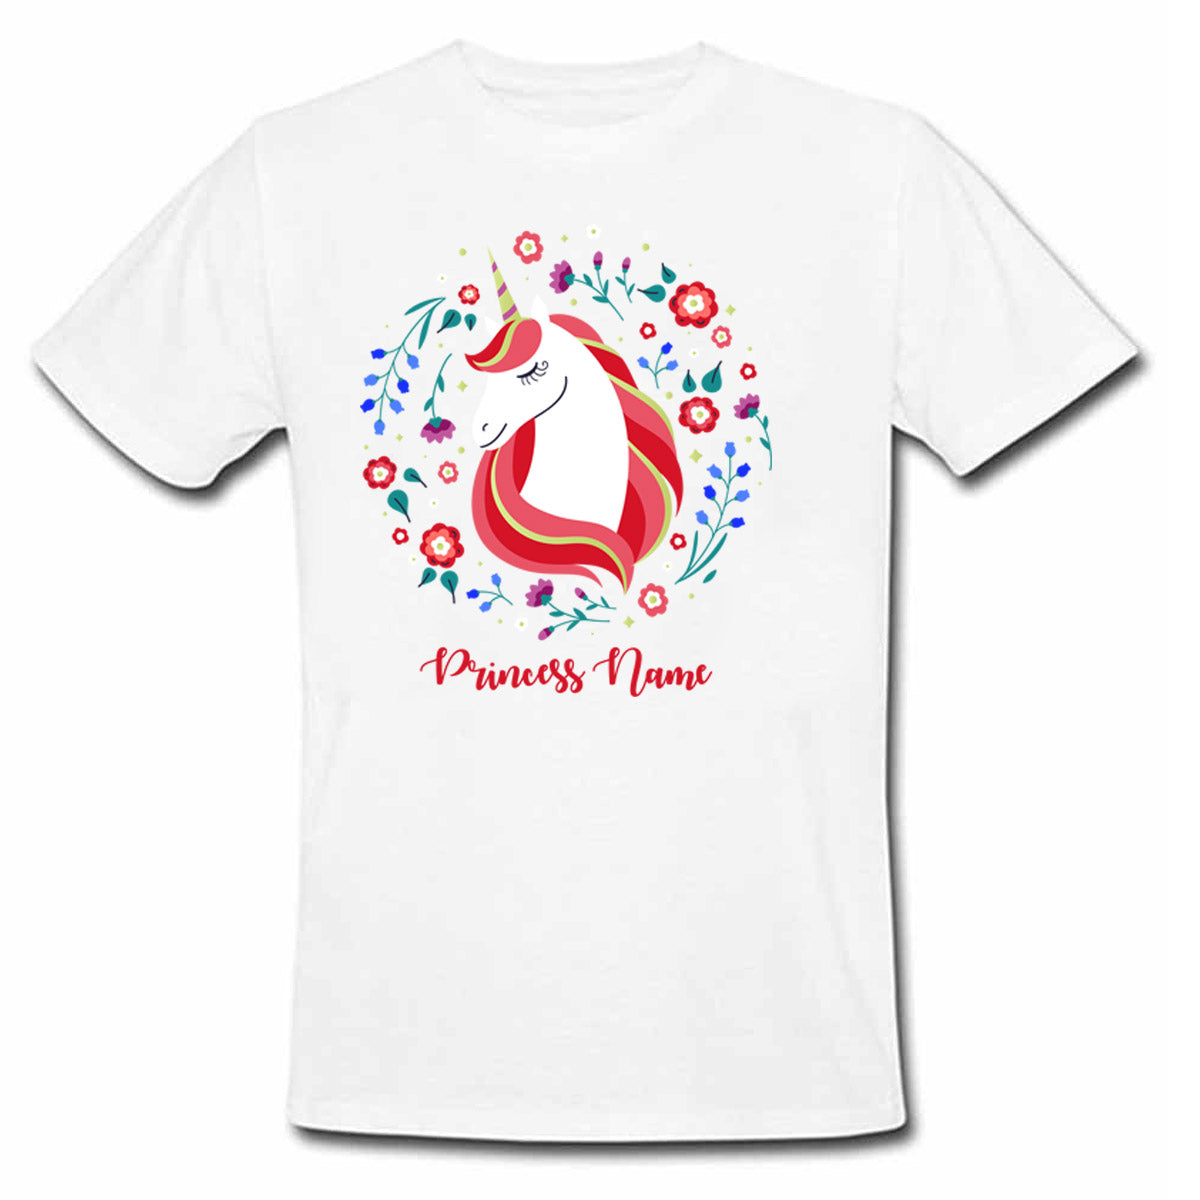 Sprinklecart Unicorn Princess Personalized Poly-Cotton Kids Tee Wear (White)